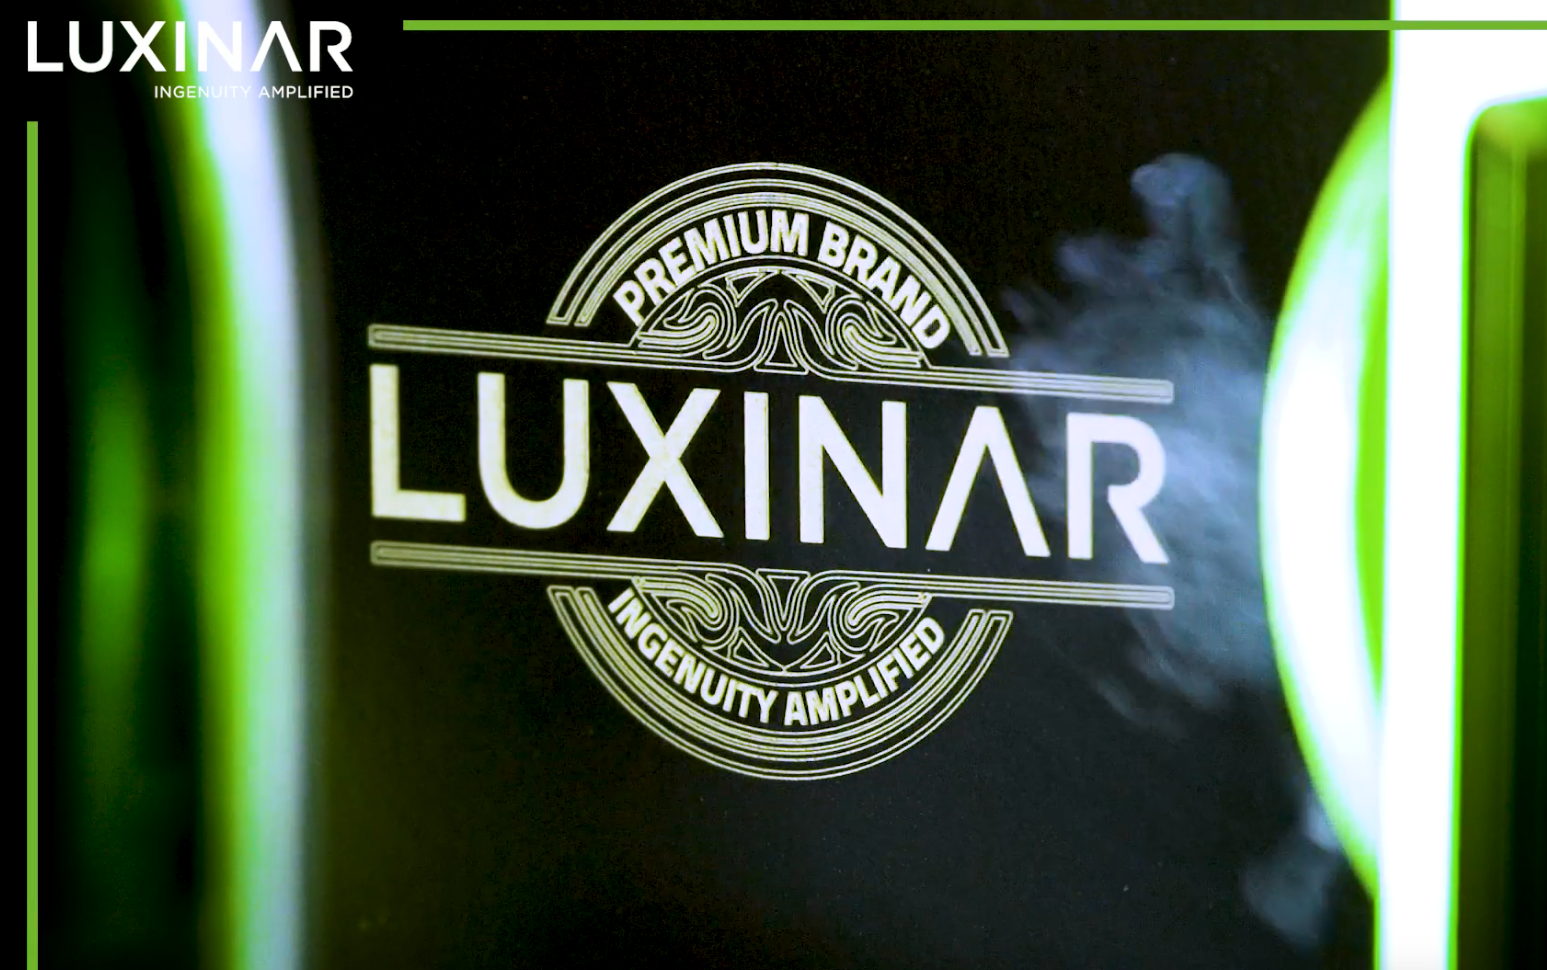 Luxinar logo laser marked on glass